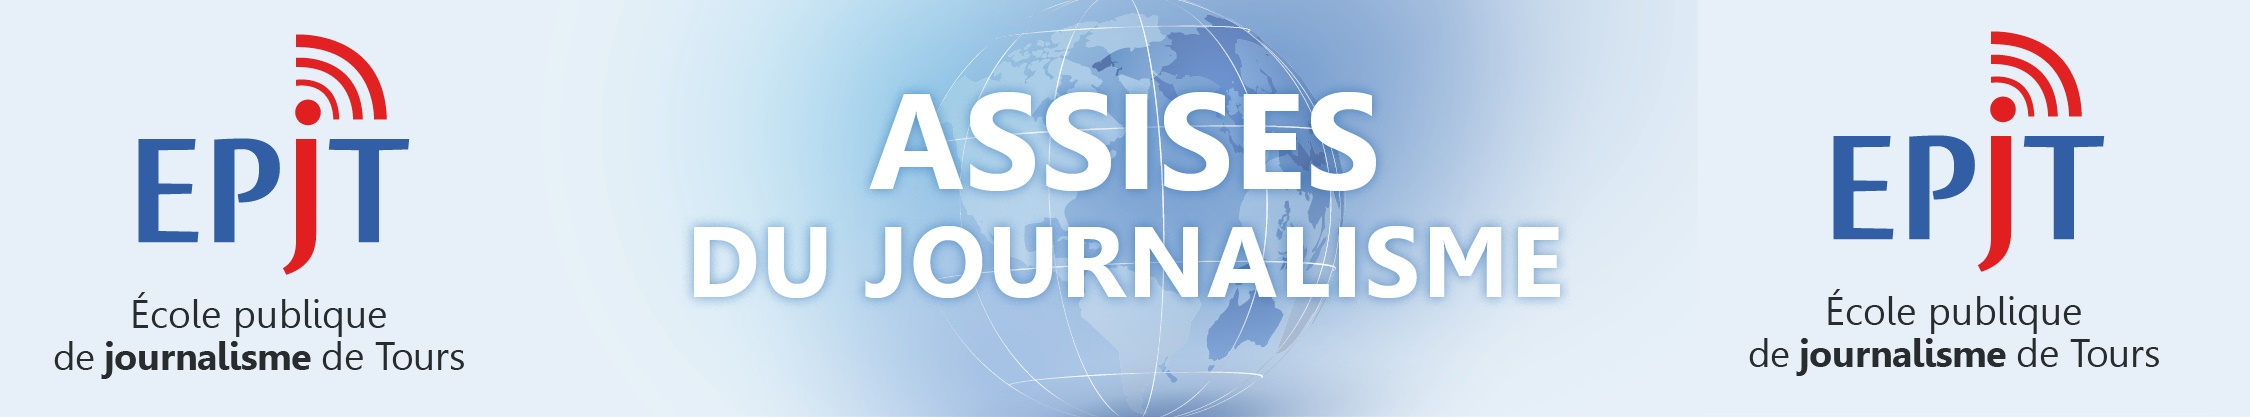 Assises.journalisme.epjt.fr